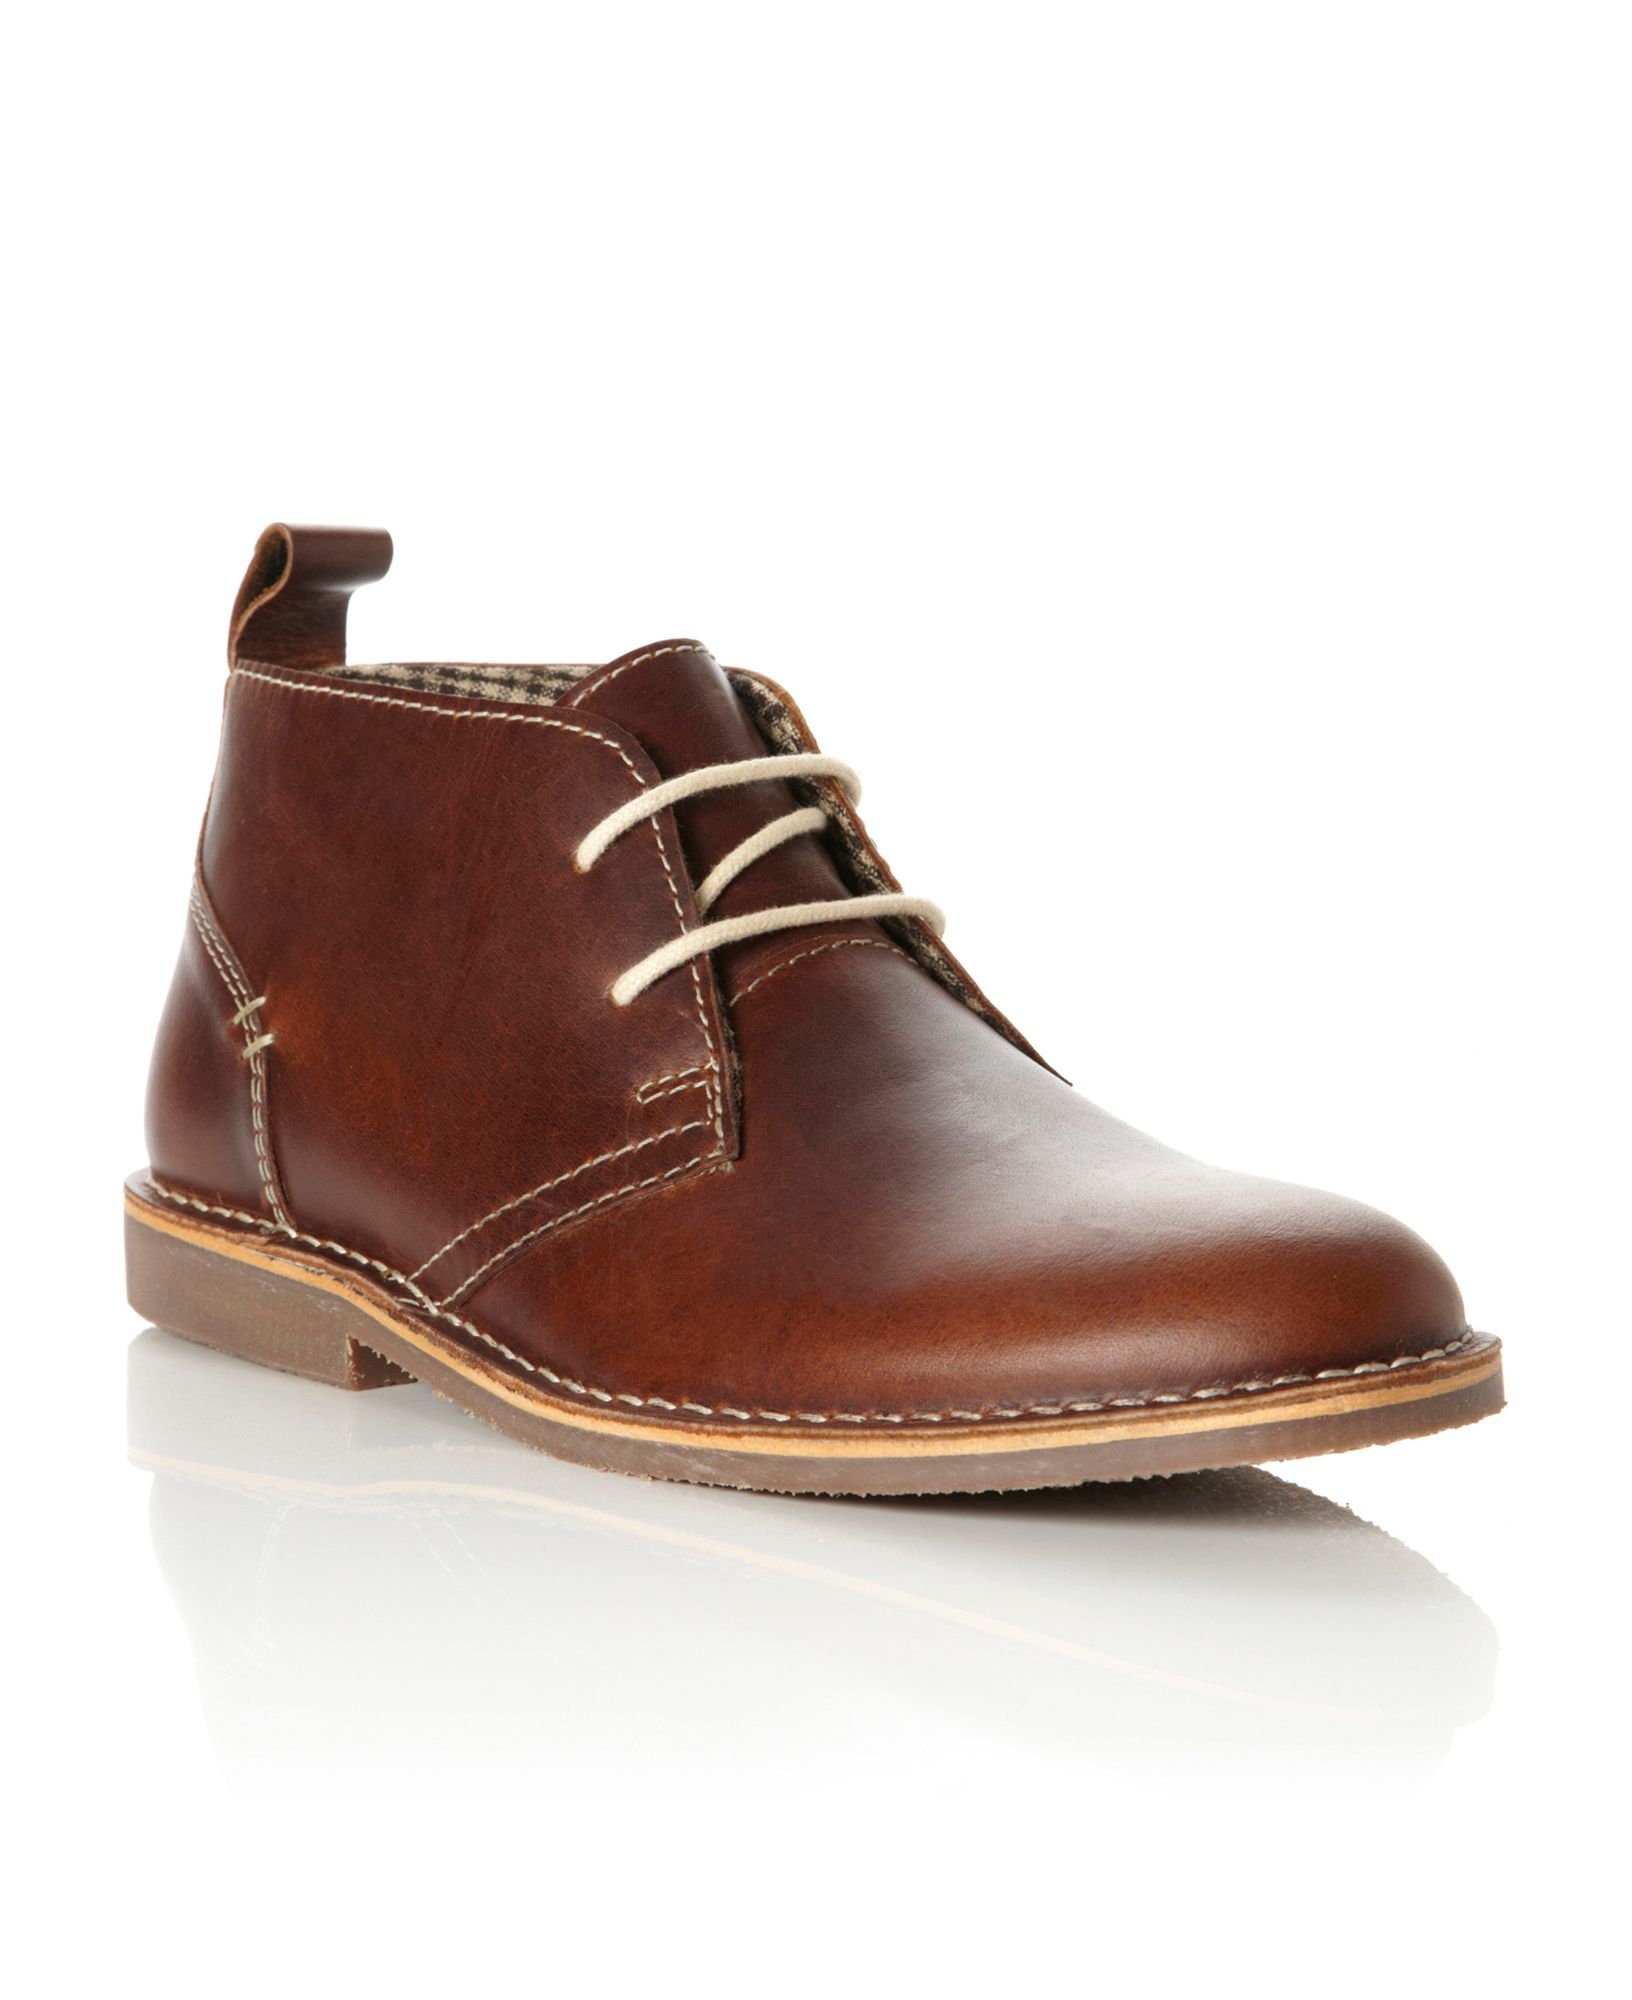 howick hstead suede lace up desert boots in brown for